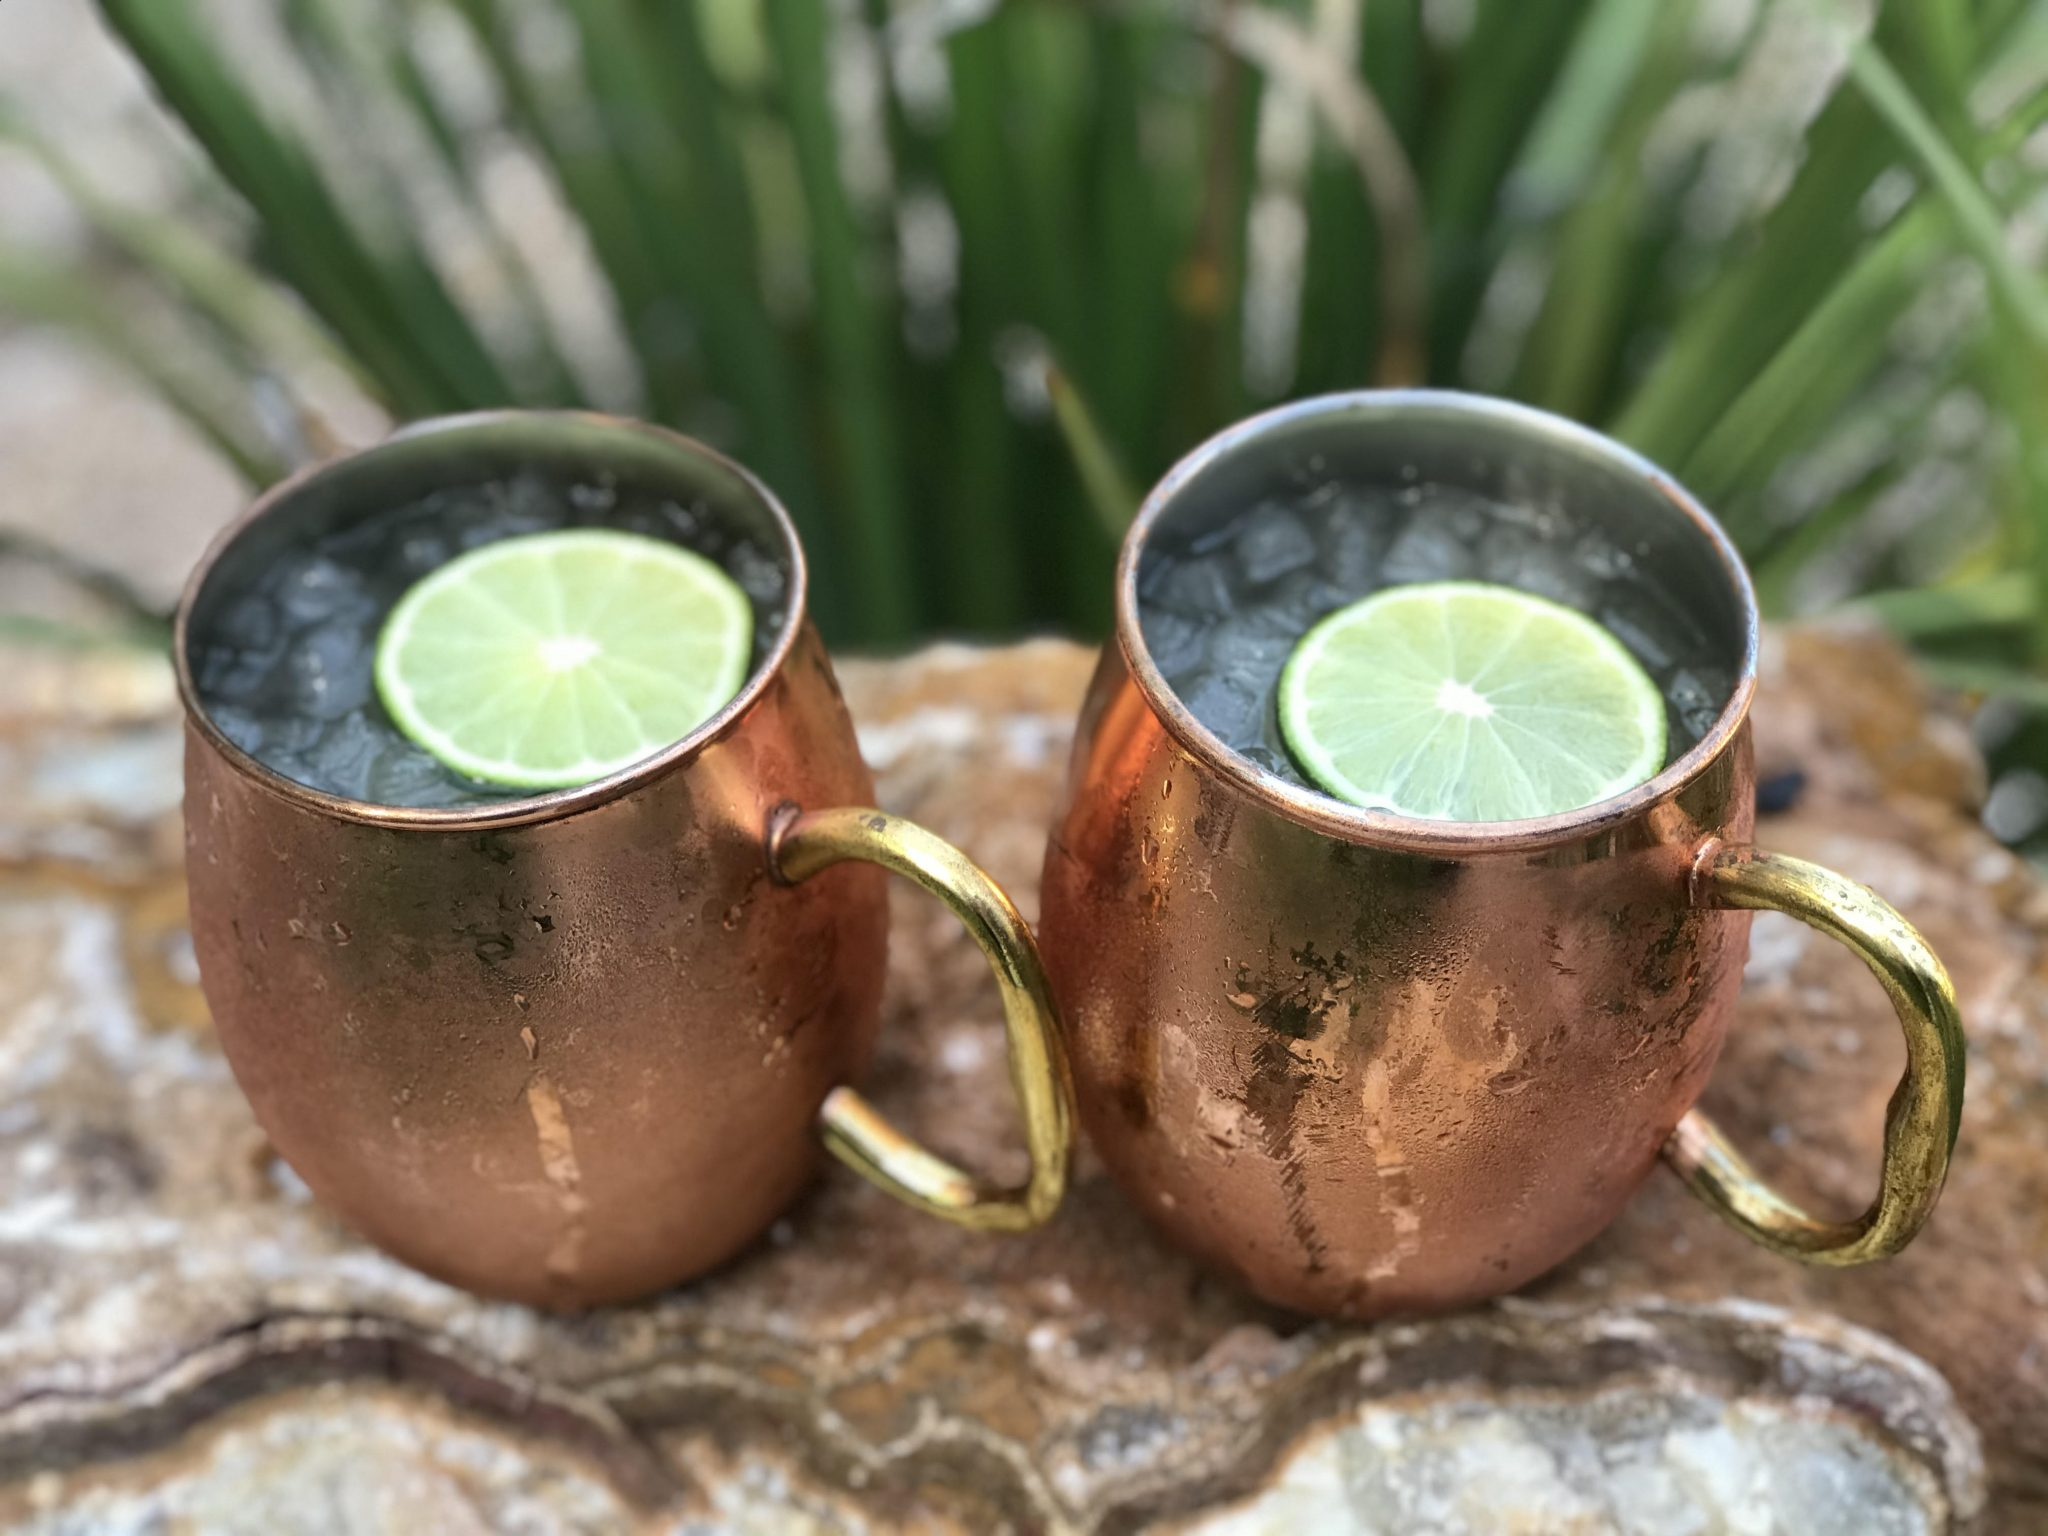 Moscow Mules made with Devils River Whiskey